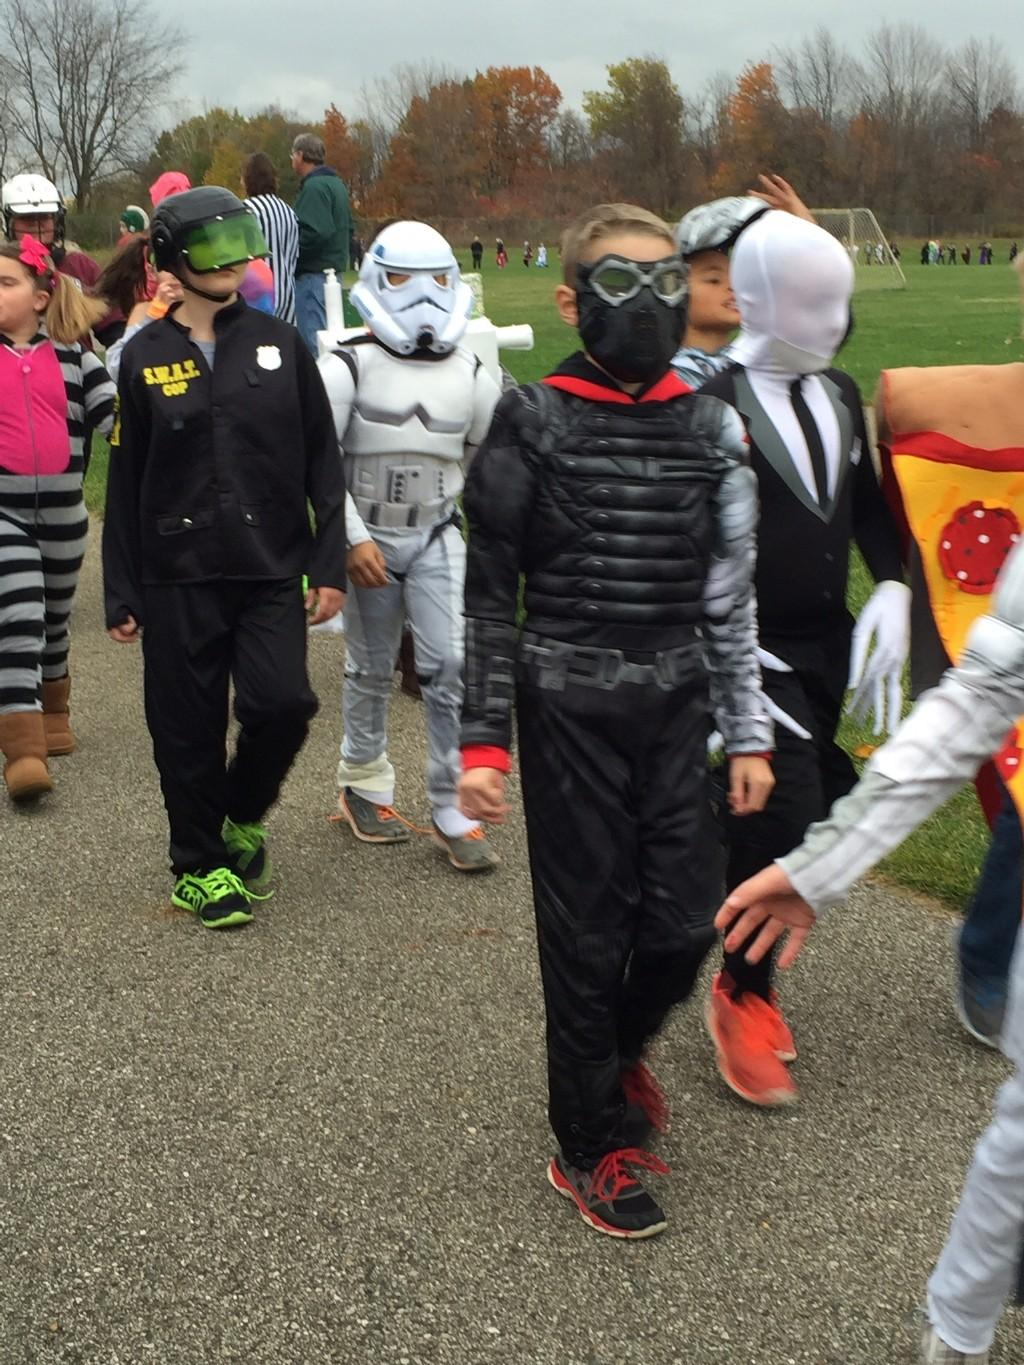 kids in costume parade outside around playground